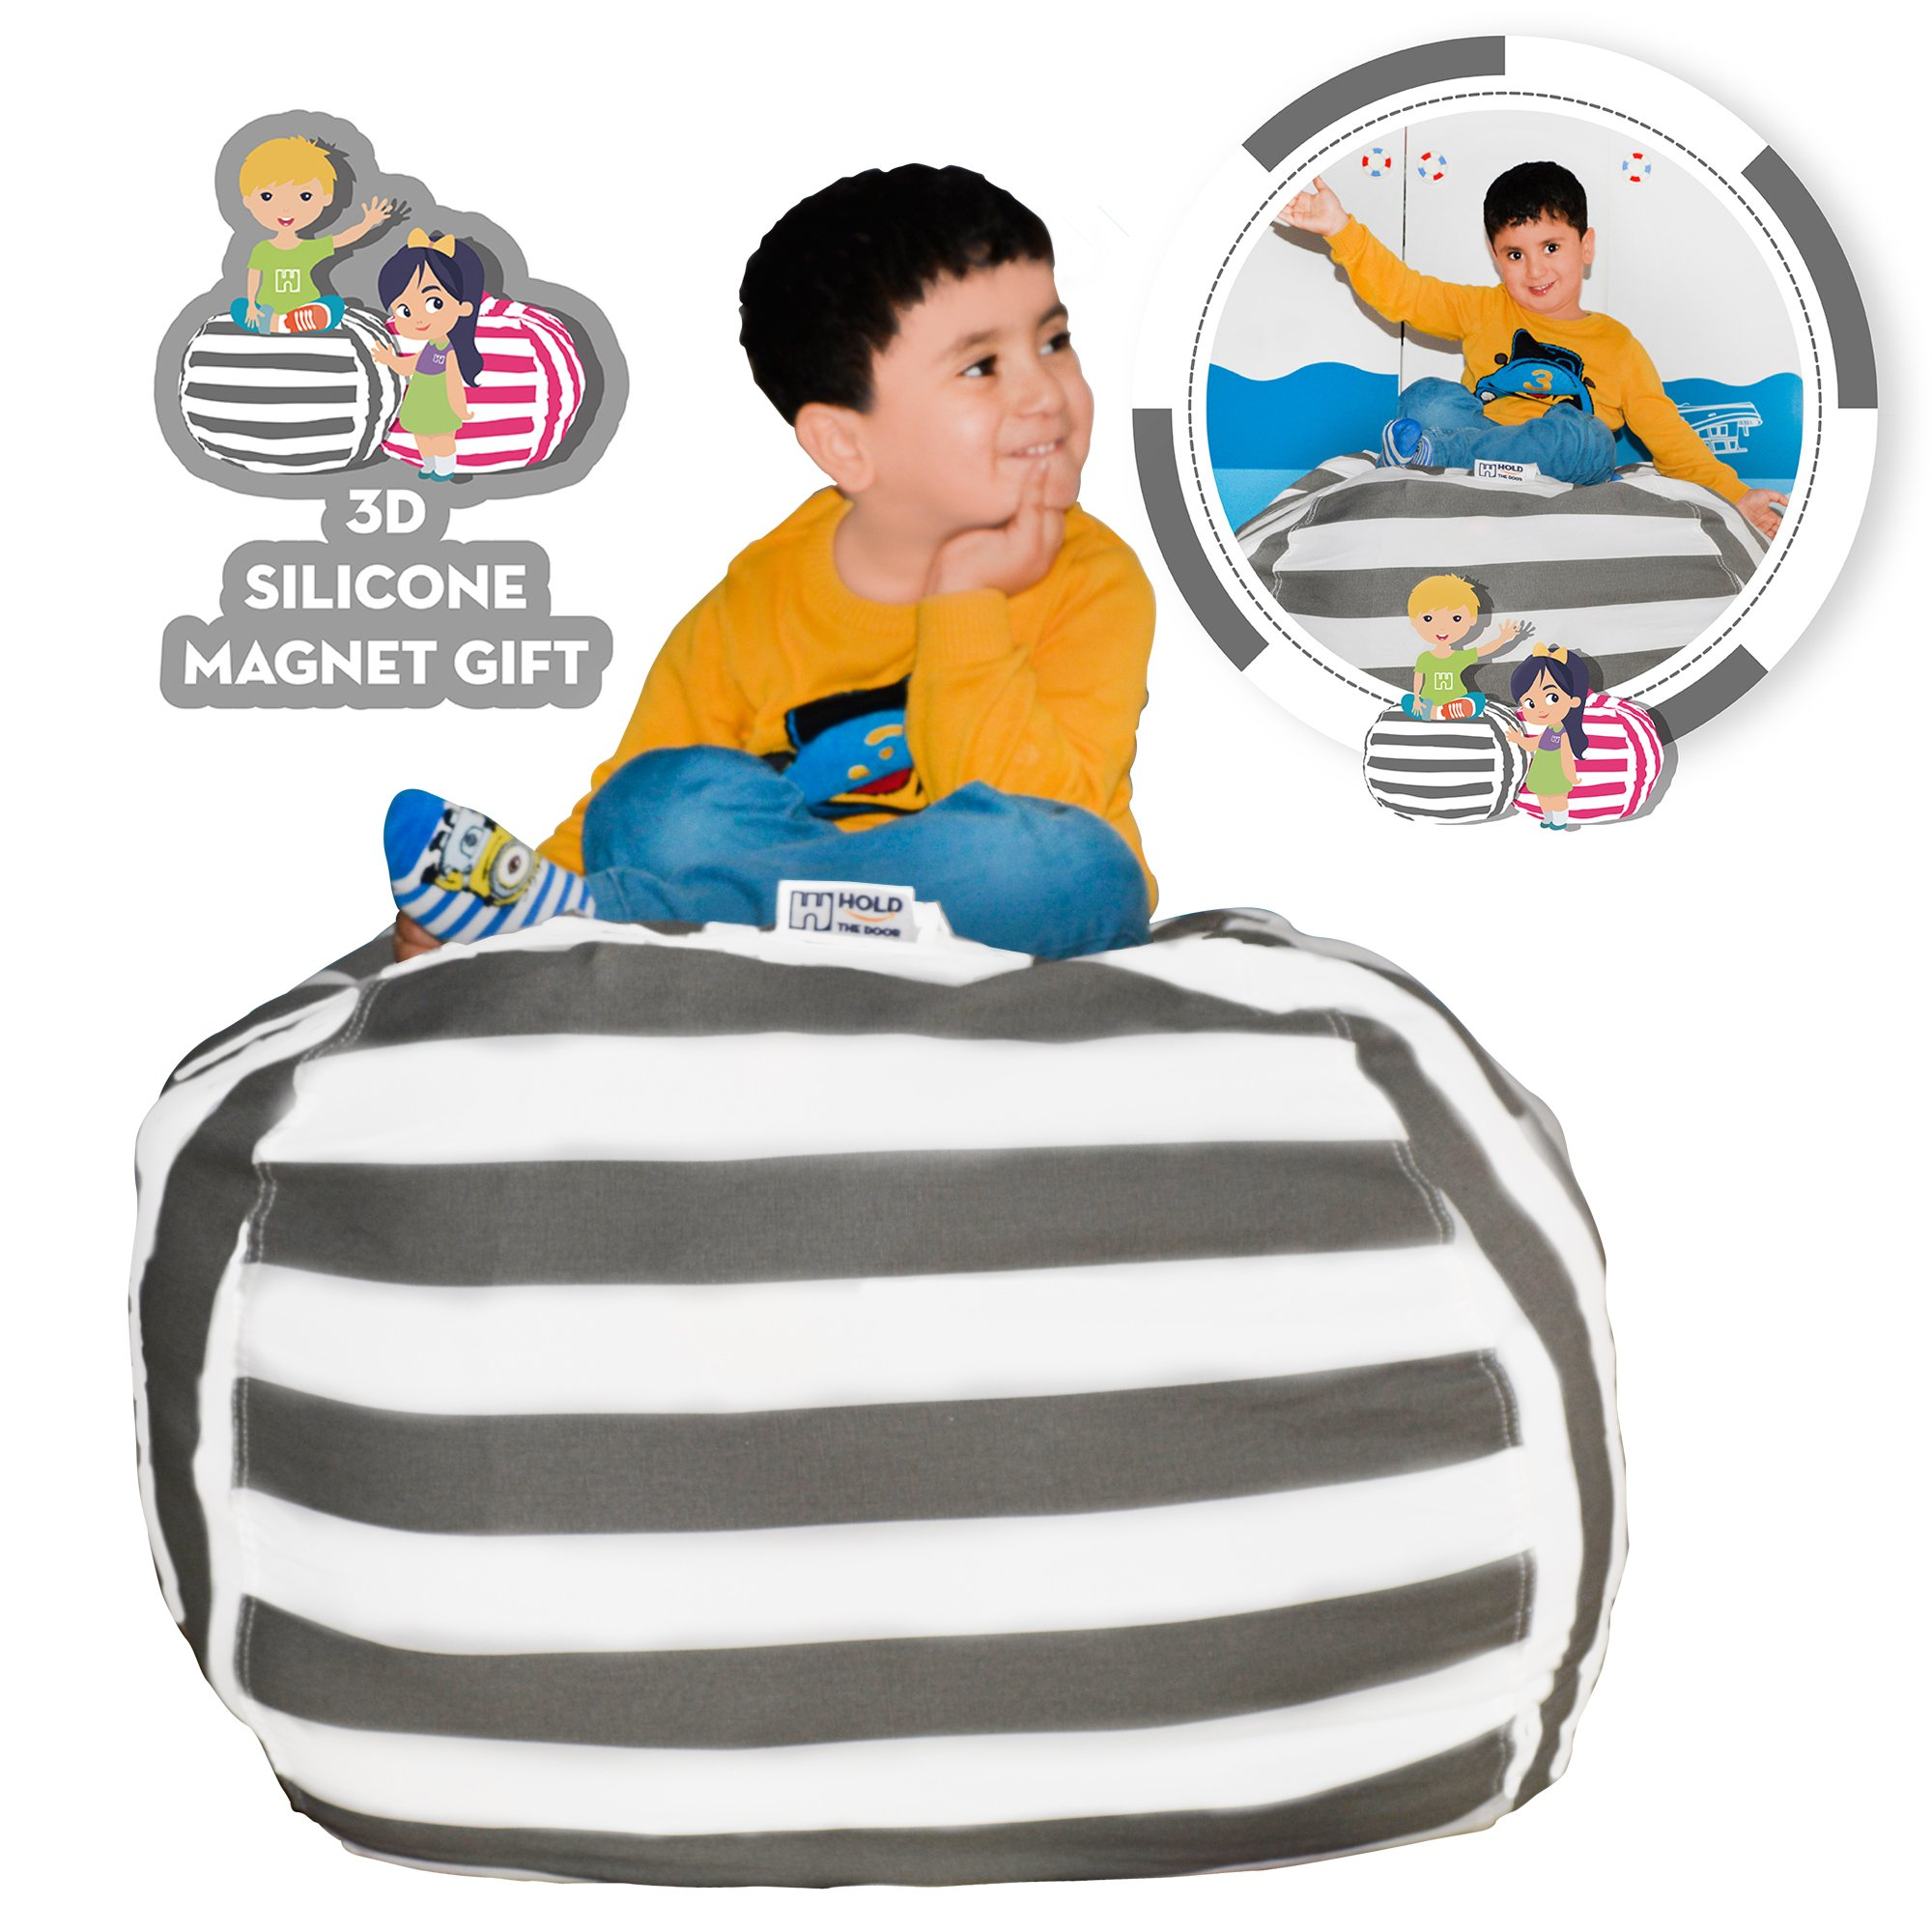 Hold The Door Extra Large Stuffed Animal Storage Bean Bag Chair - Toy Organizer & Comfy Chair - Perfect Storage Solution for Plush Toys, Blankets, Towels & Clothes - (Grey Striped, 38'') by Hold The Door (Image #1)